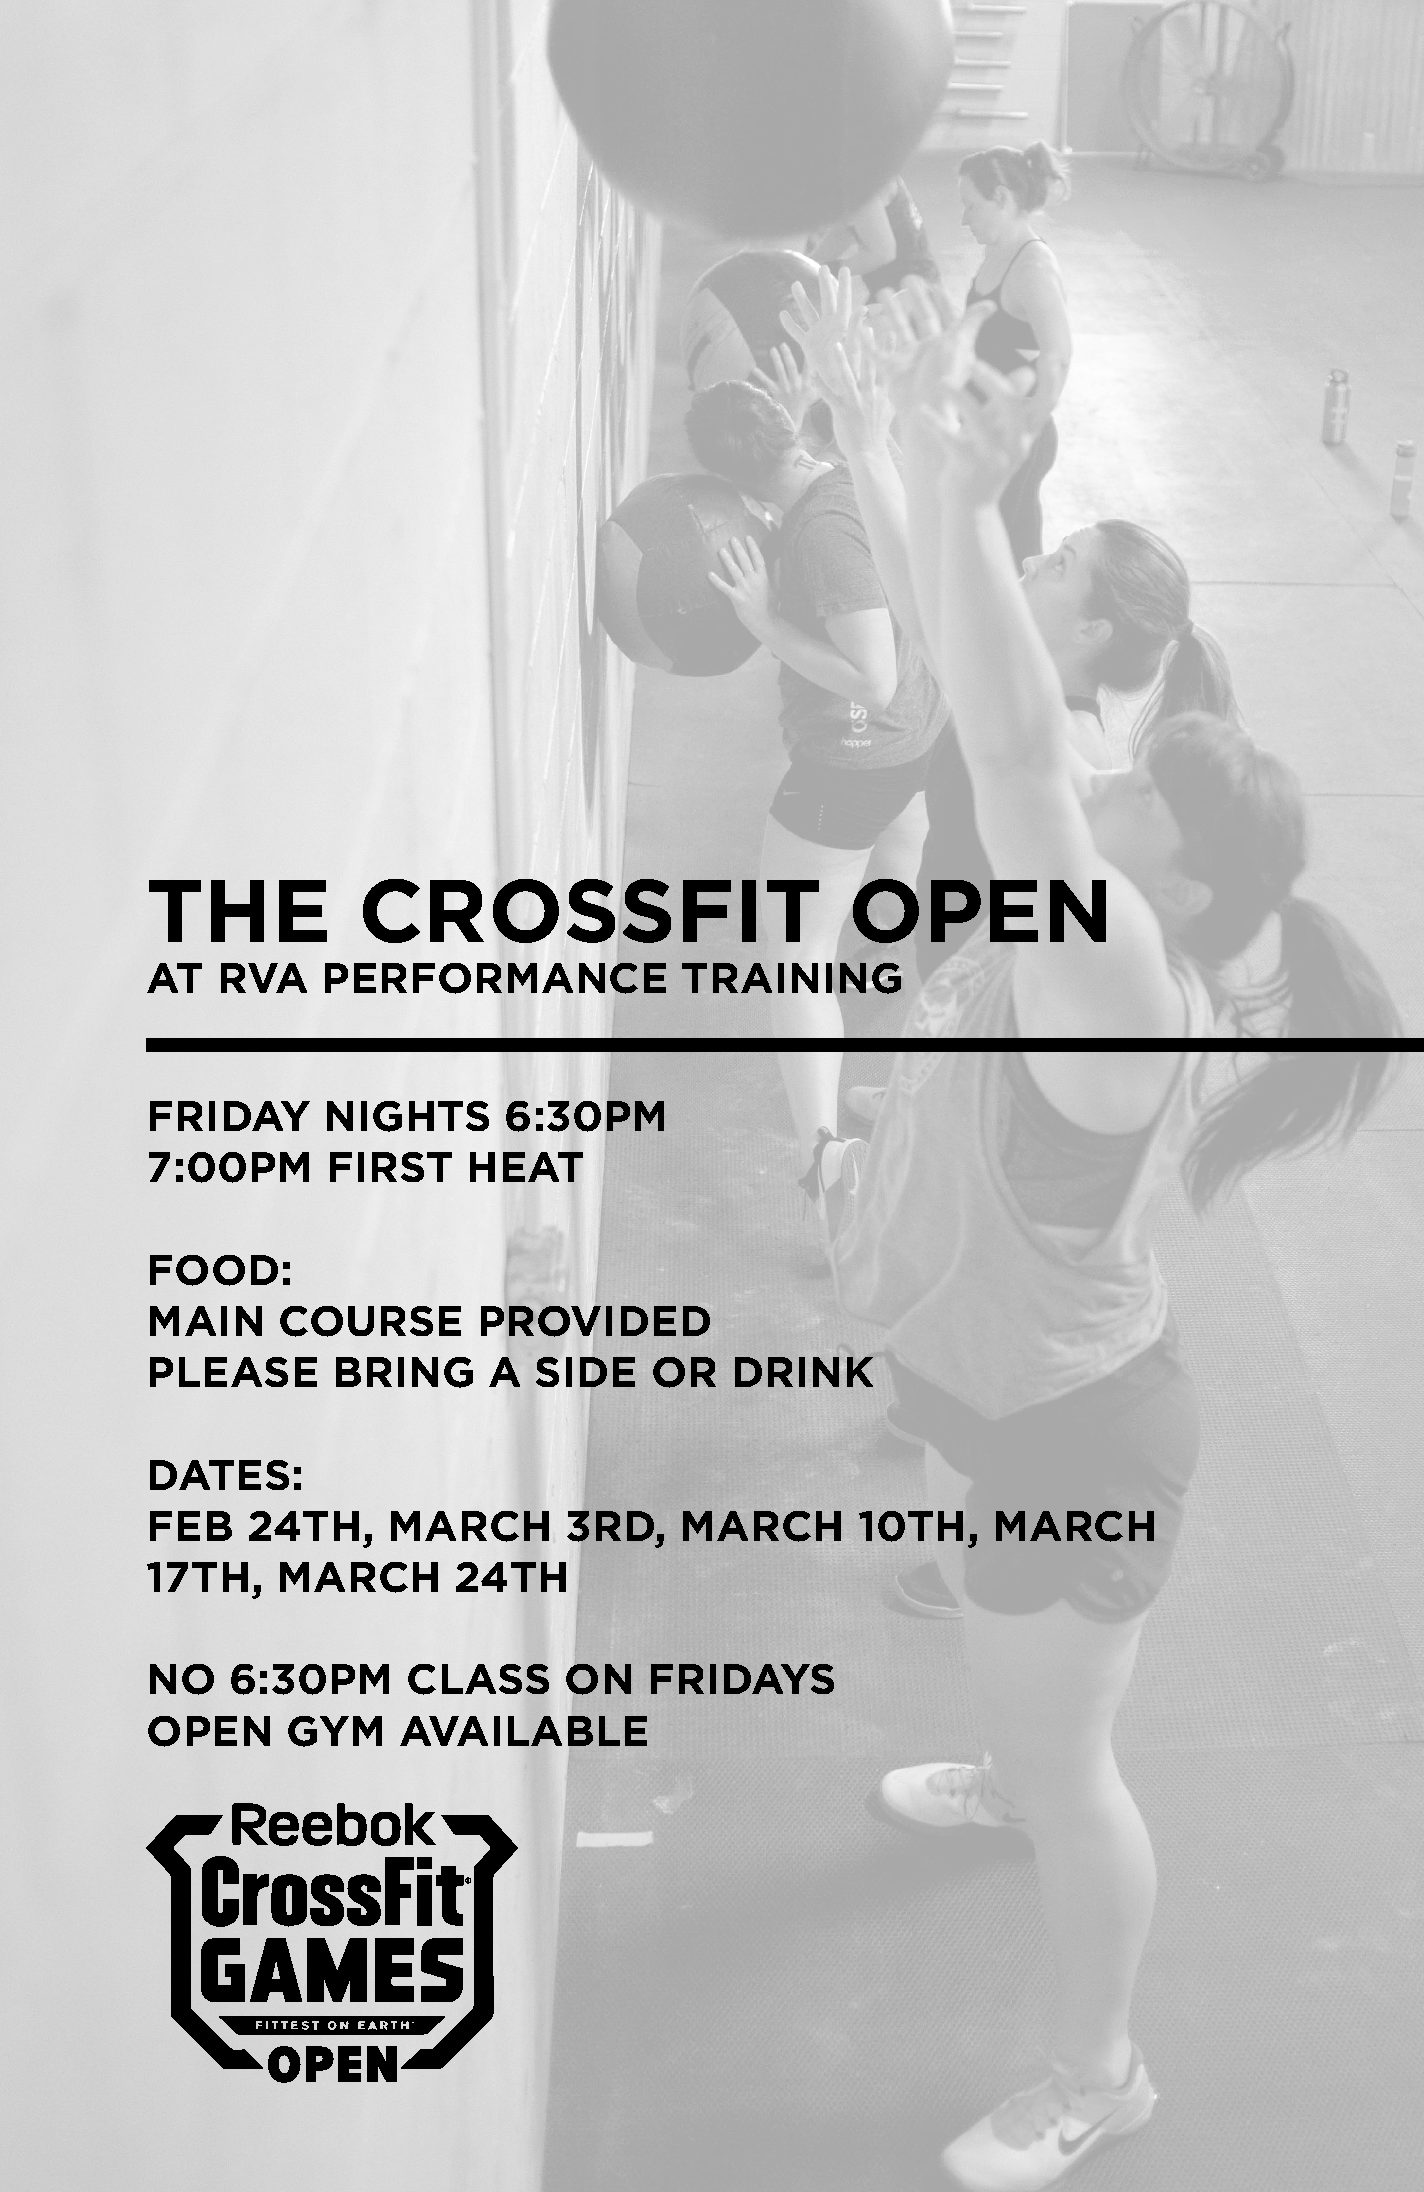 CrossFit RVA Open Season Schedule - RVA Performance Training